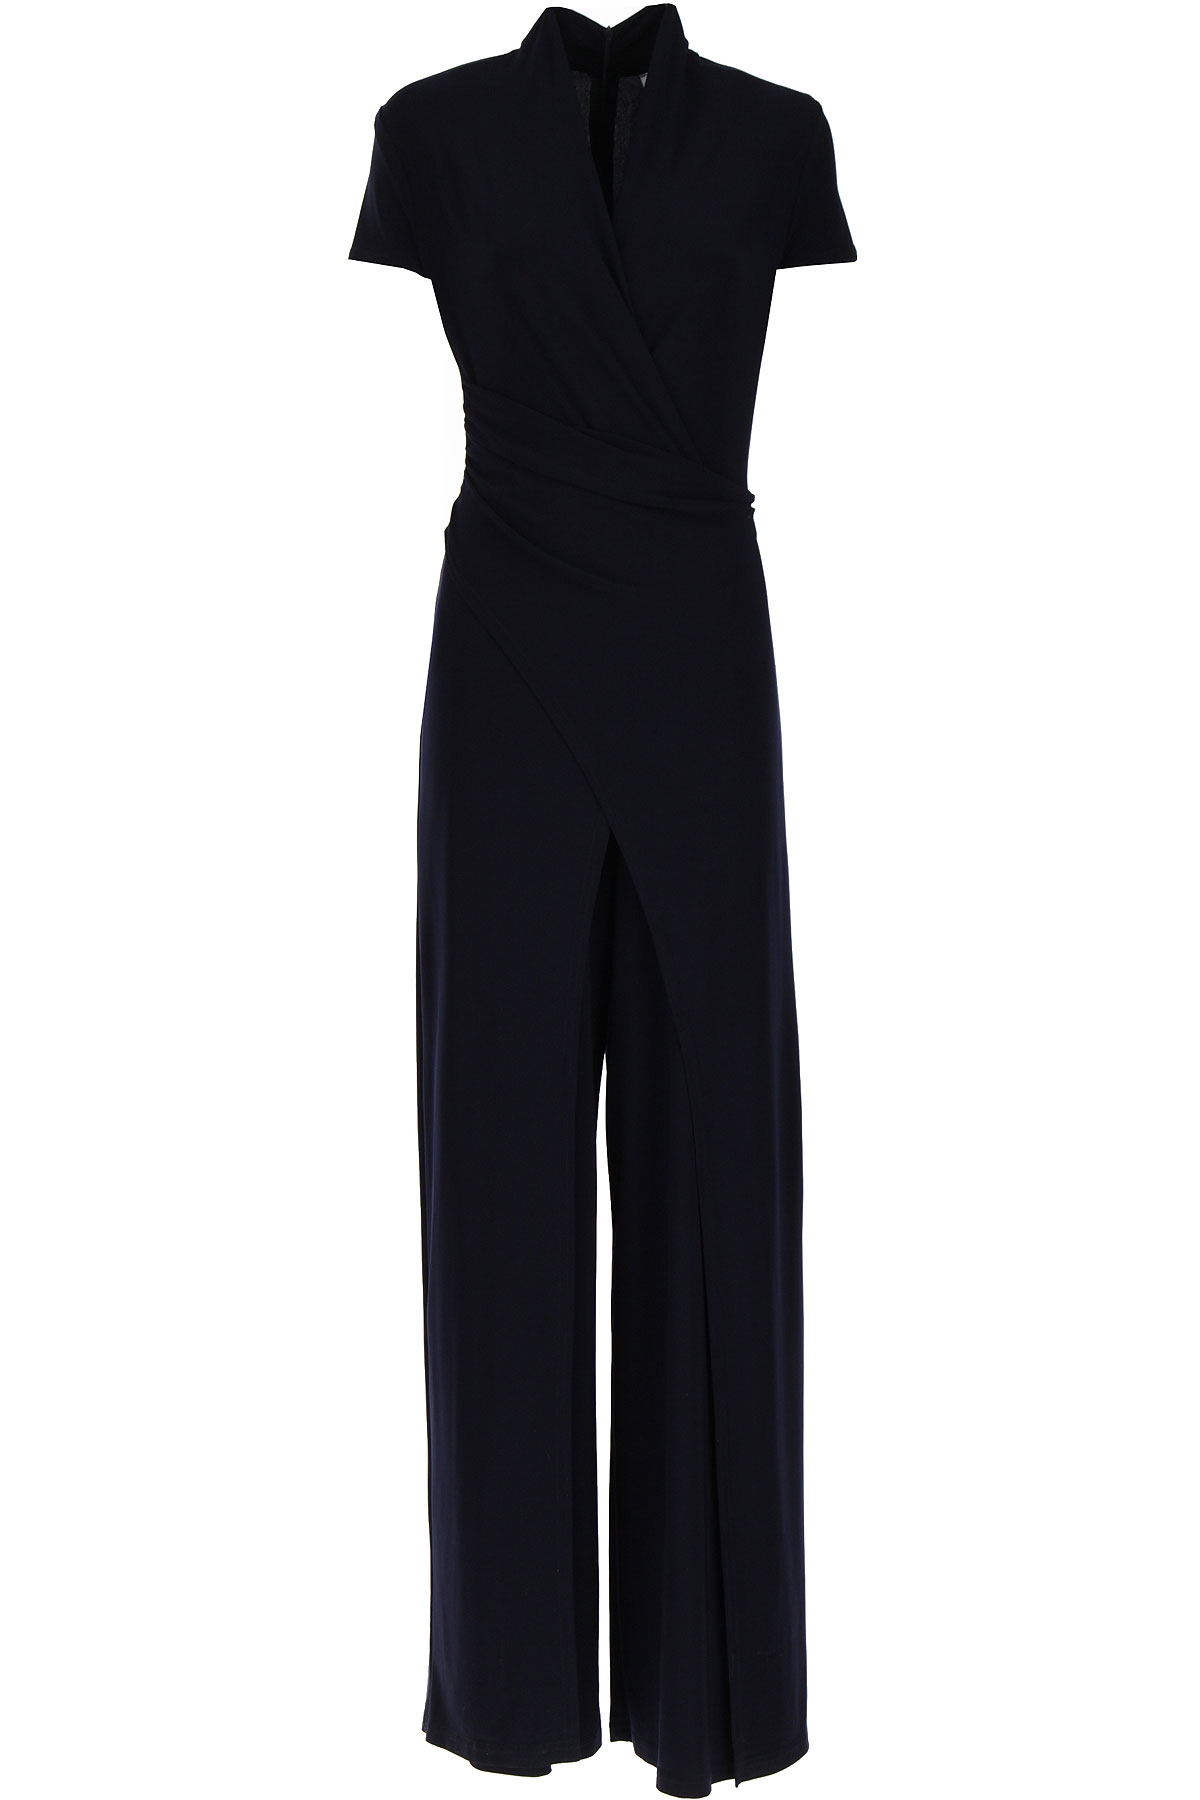 Joseph Ribkoff Dress for Women, Evening Cocktail Party On Sale, Midnight Blue, polyester, 2019, 10 12 6 8